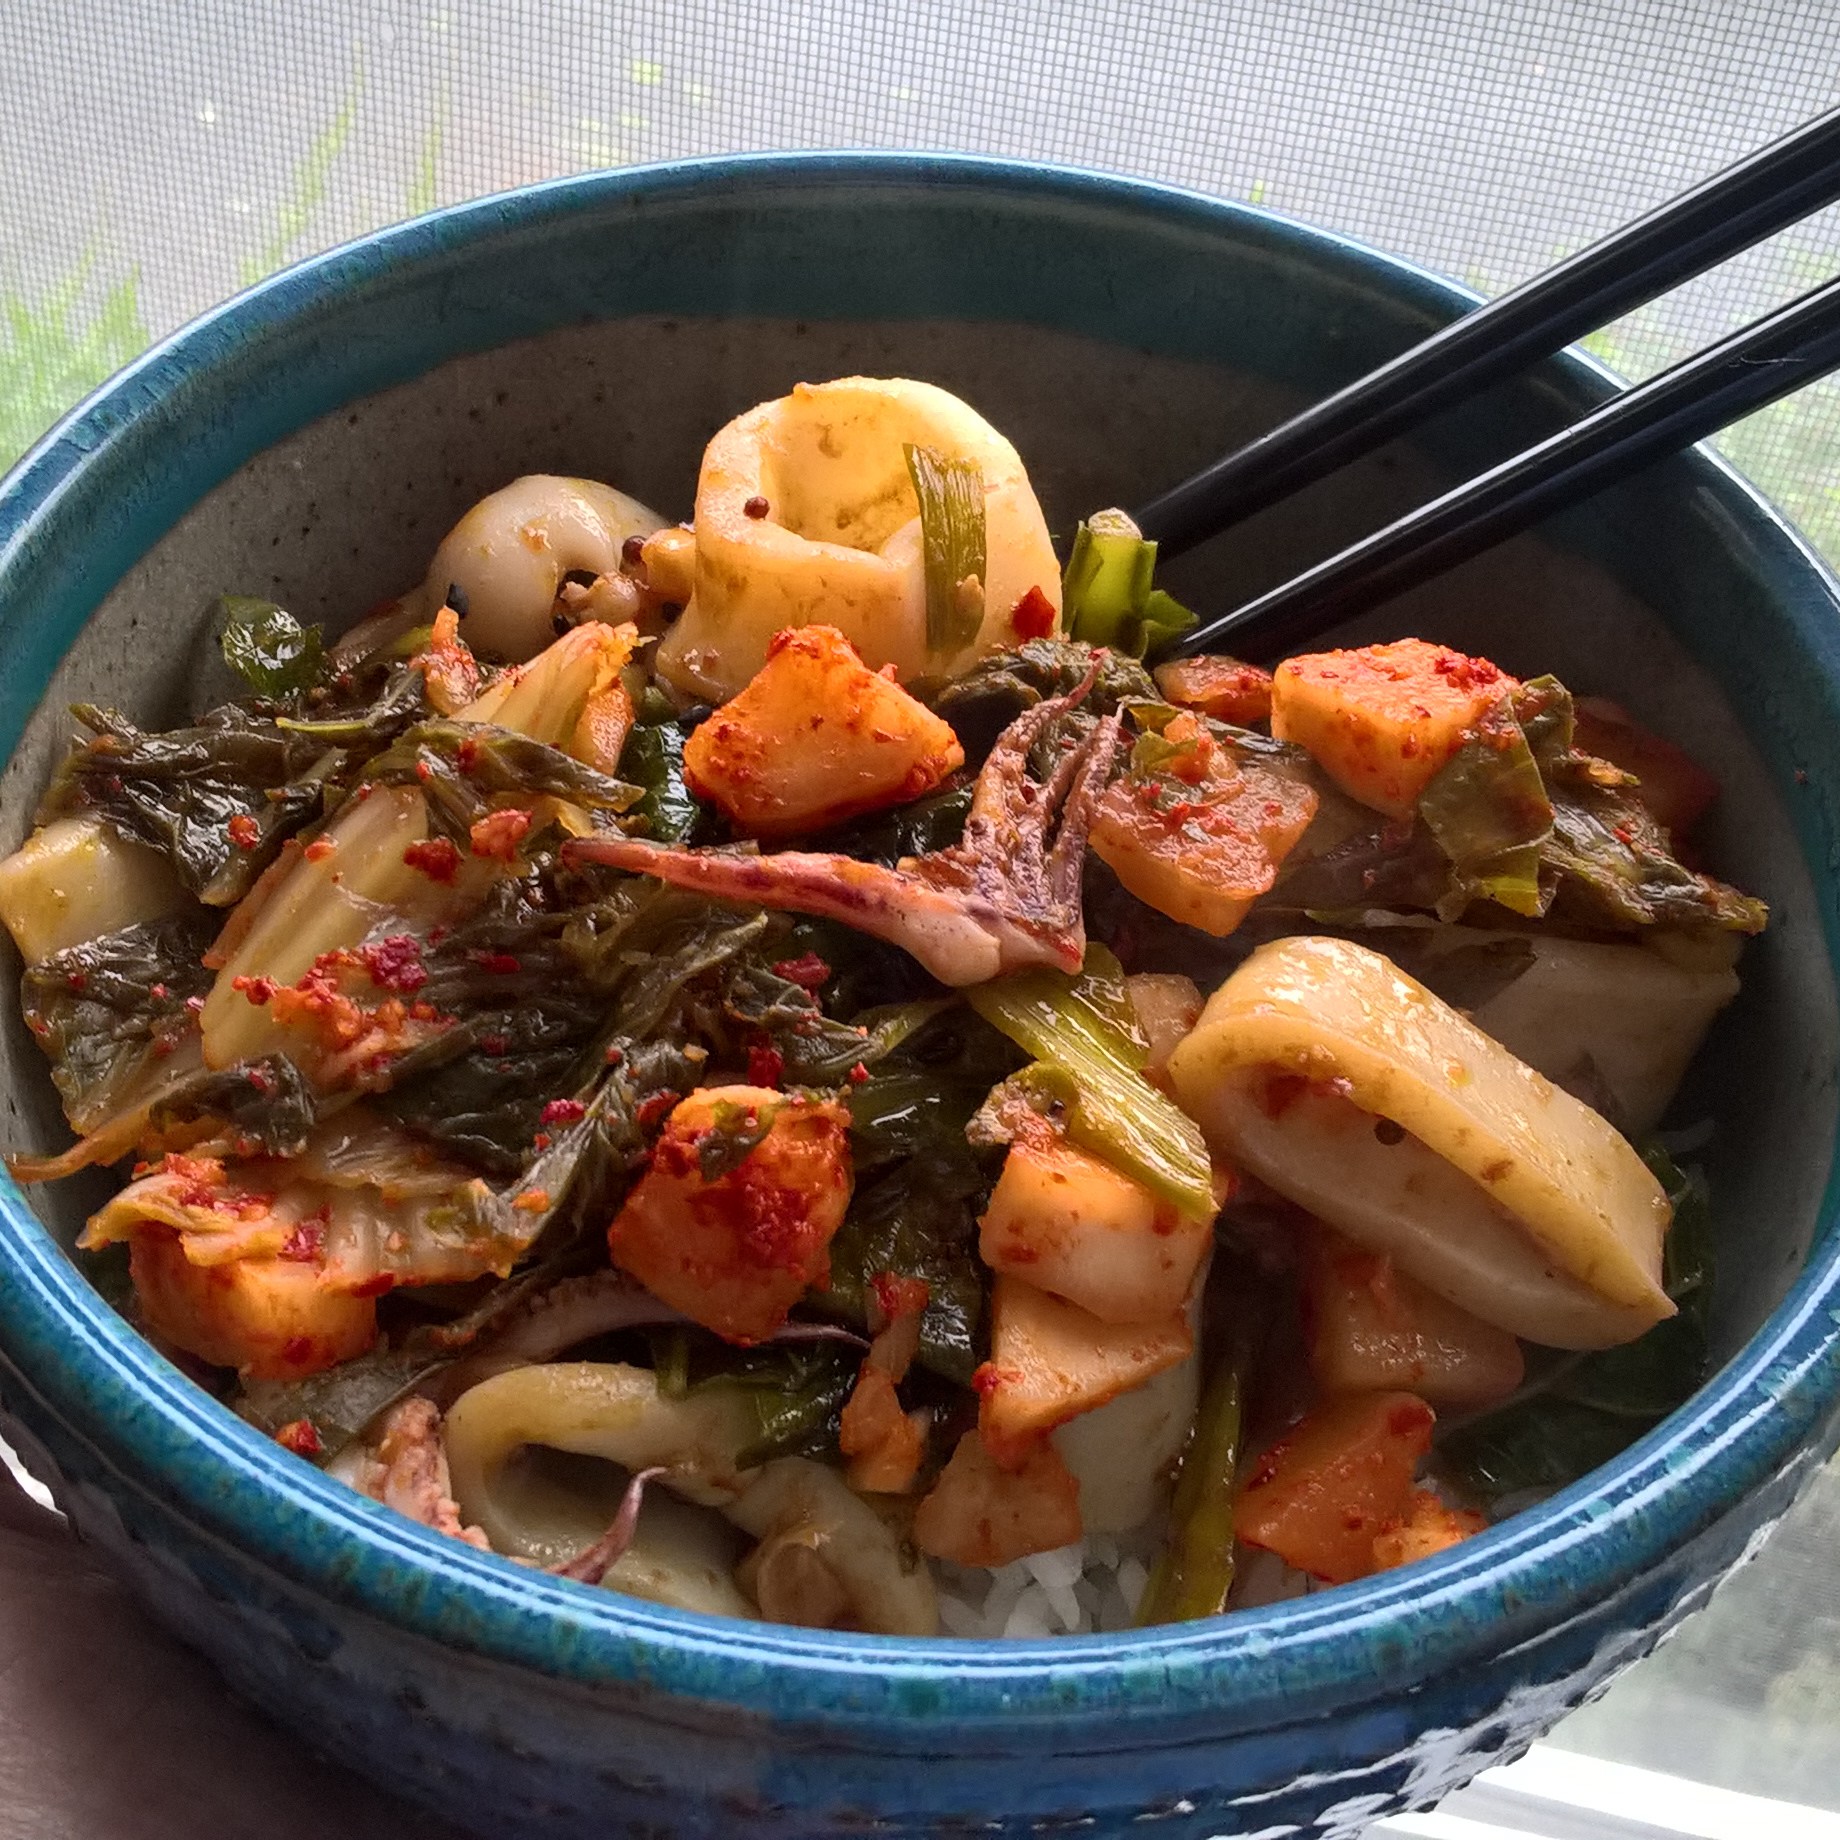 Spicy squid with greens & kimchi over rice.